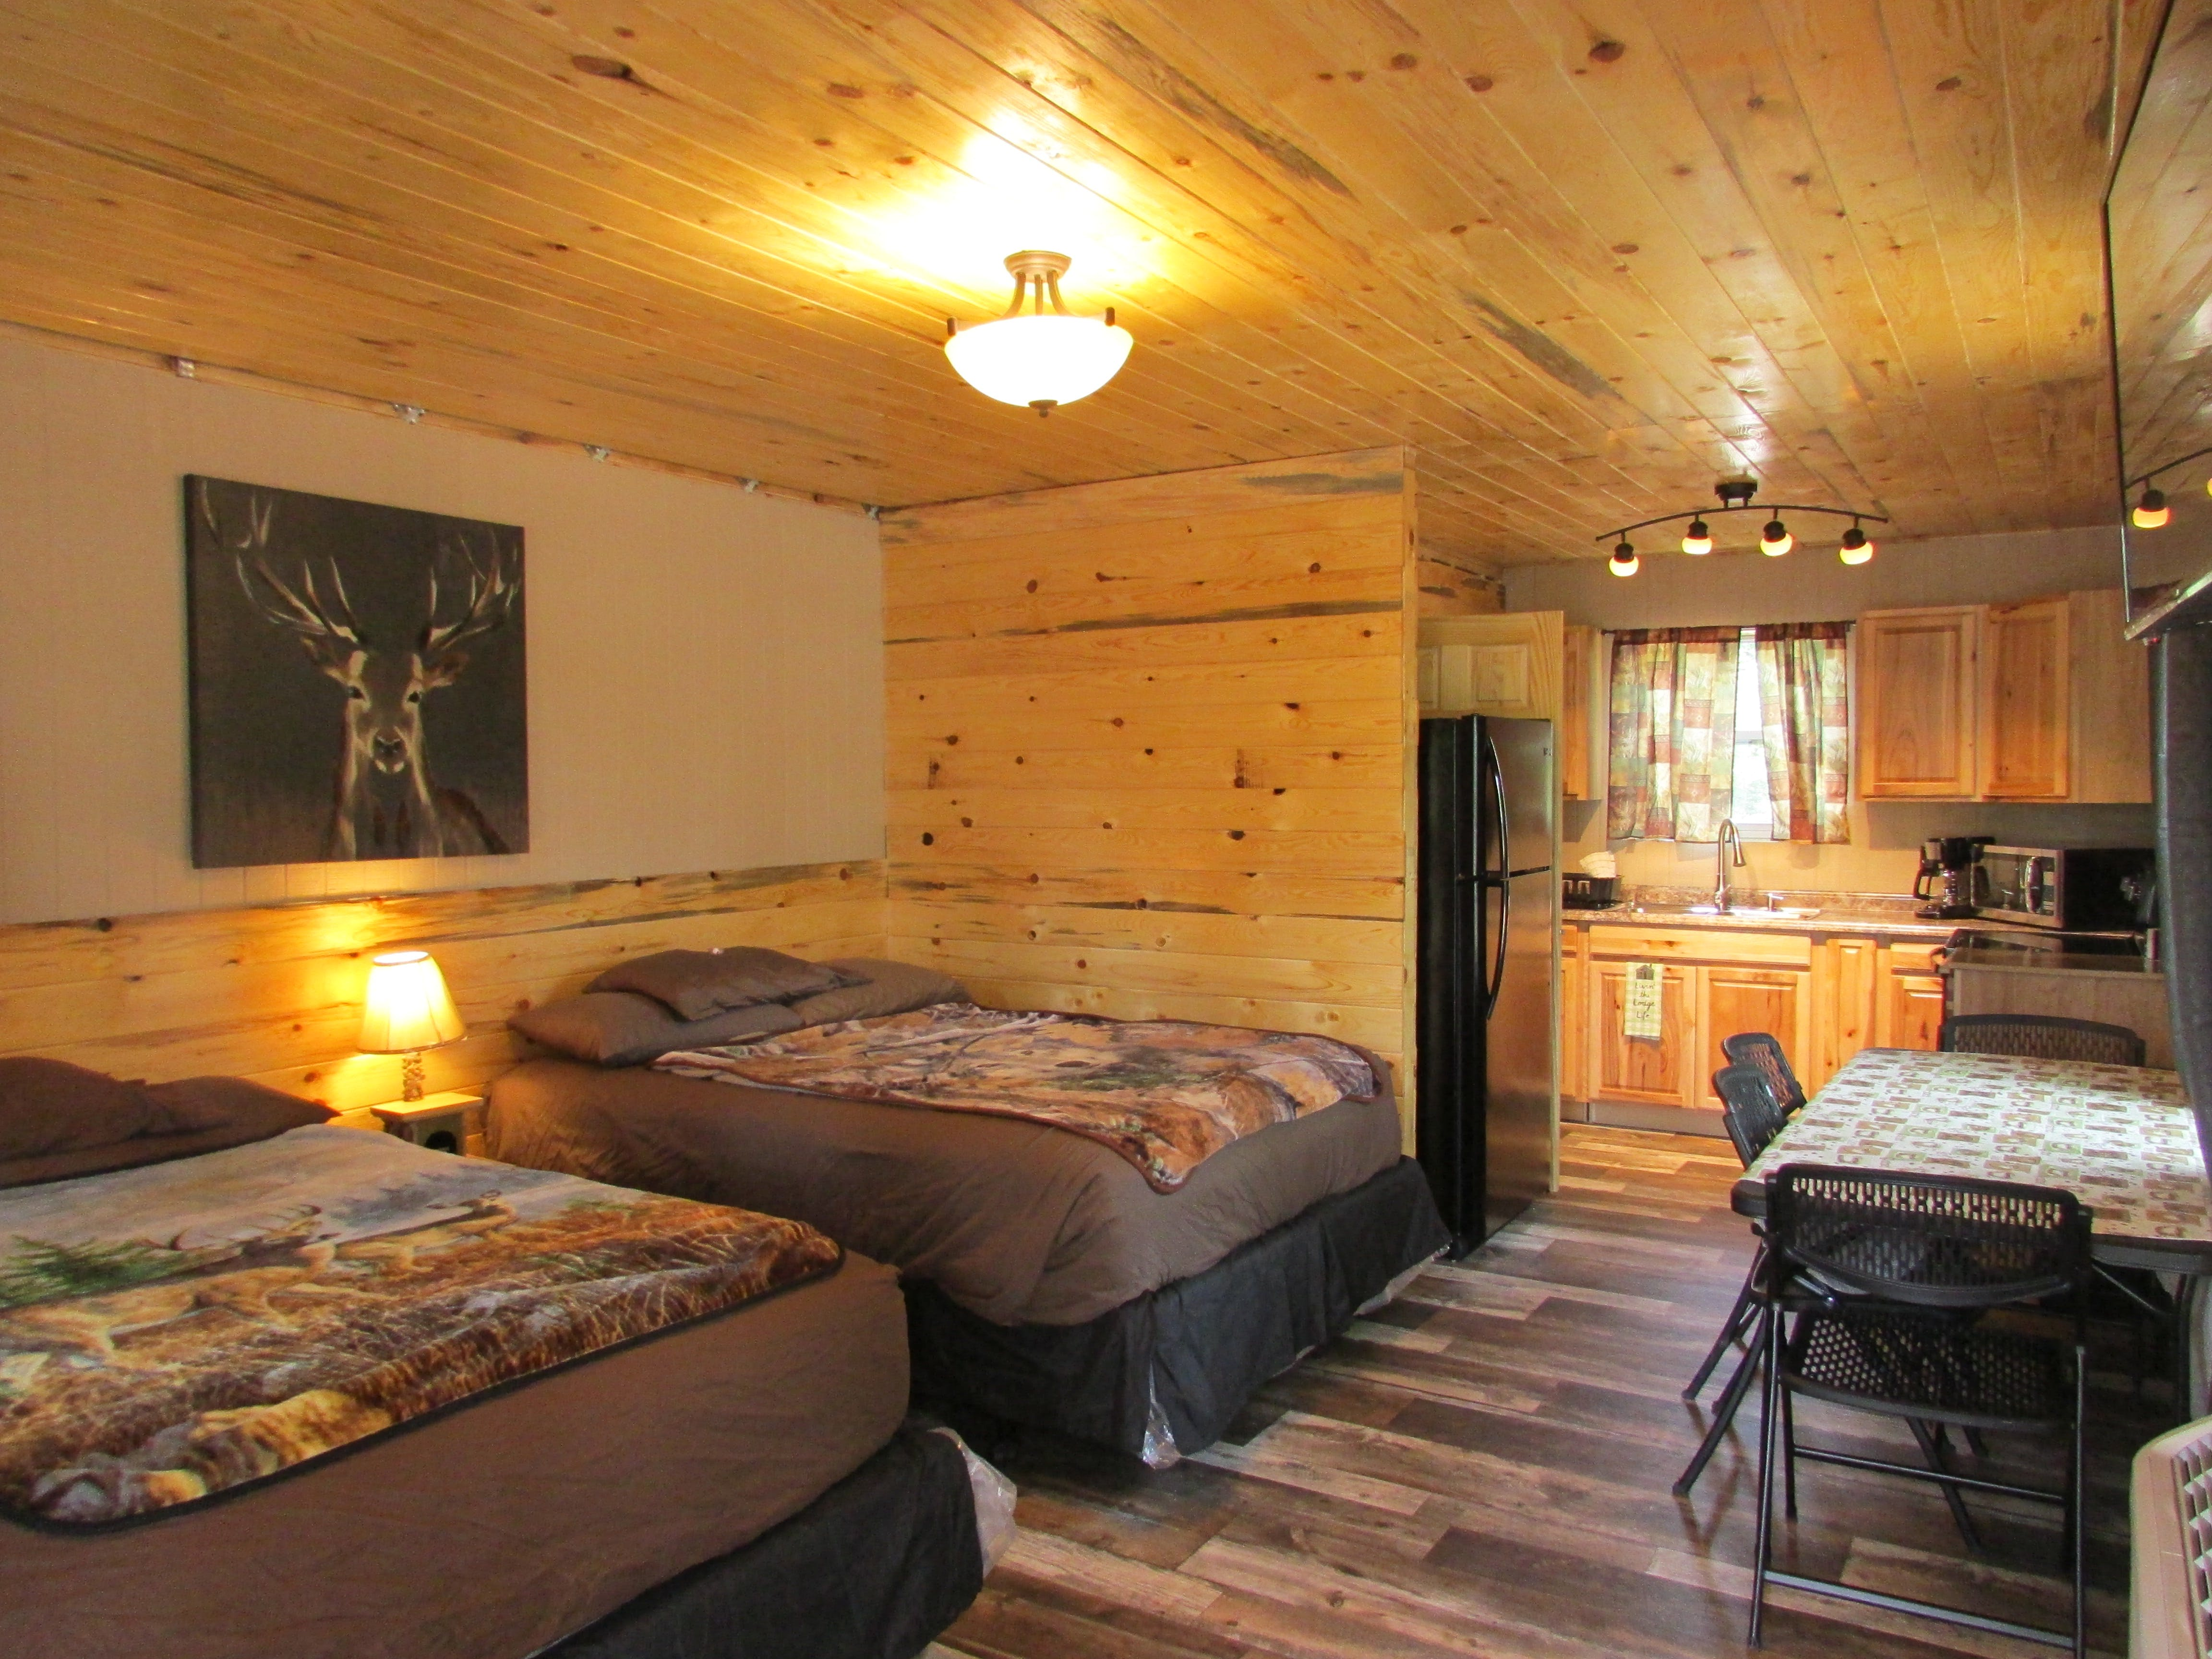 Best Bear premium Hotel accommodations with full kitchens Baldwin, Michigan